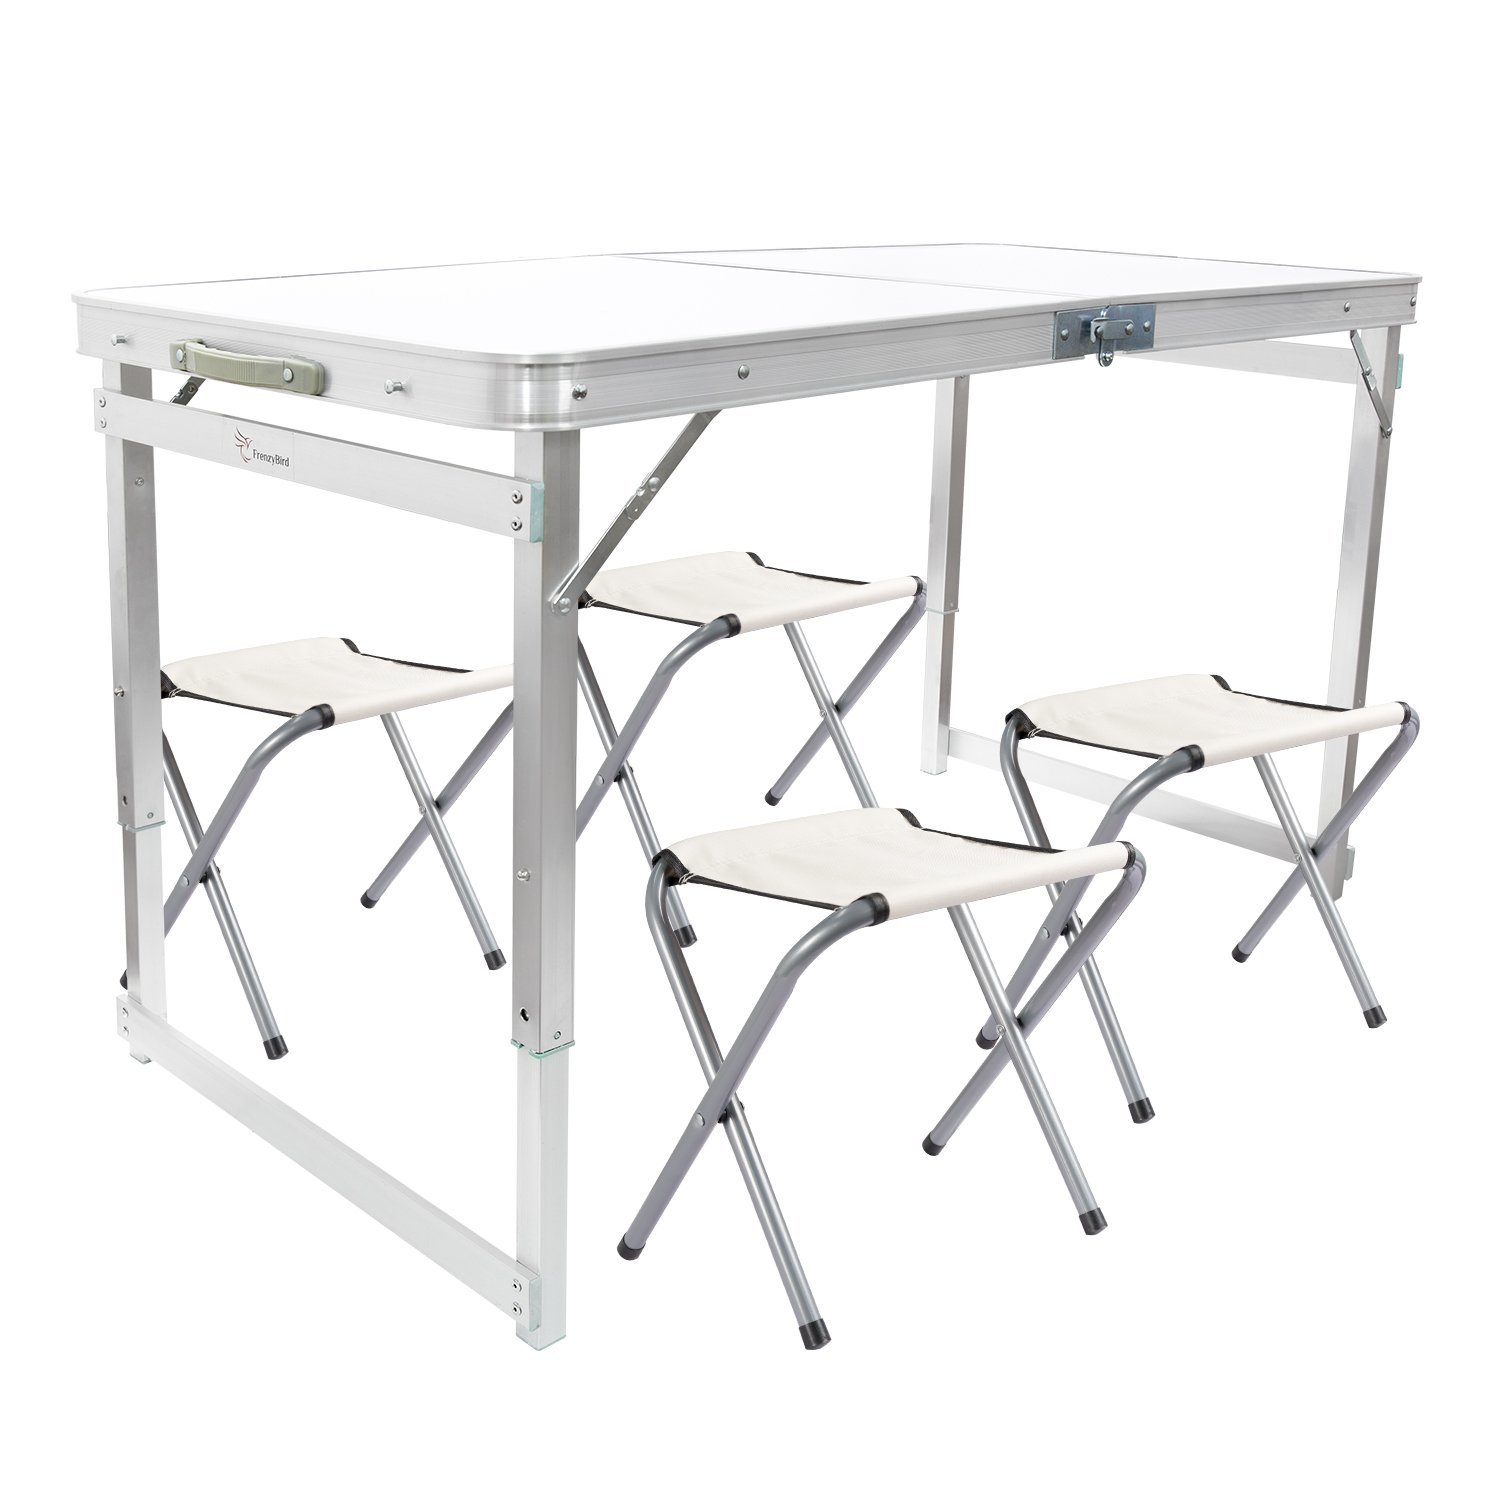 FrenzyBird 4-person Folding Picnic Table with 4 Chairs, Height Adjustable,Portable and Lightweight,for Outdoor,Camping,Picnic,BBQ,Party and Dining B07C89NX2J